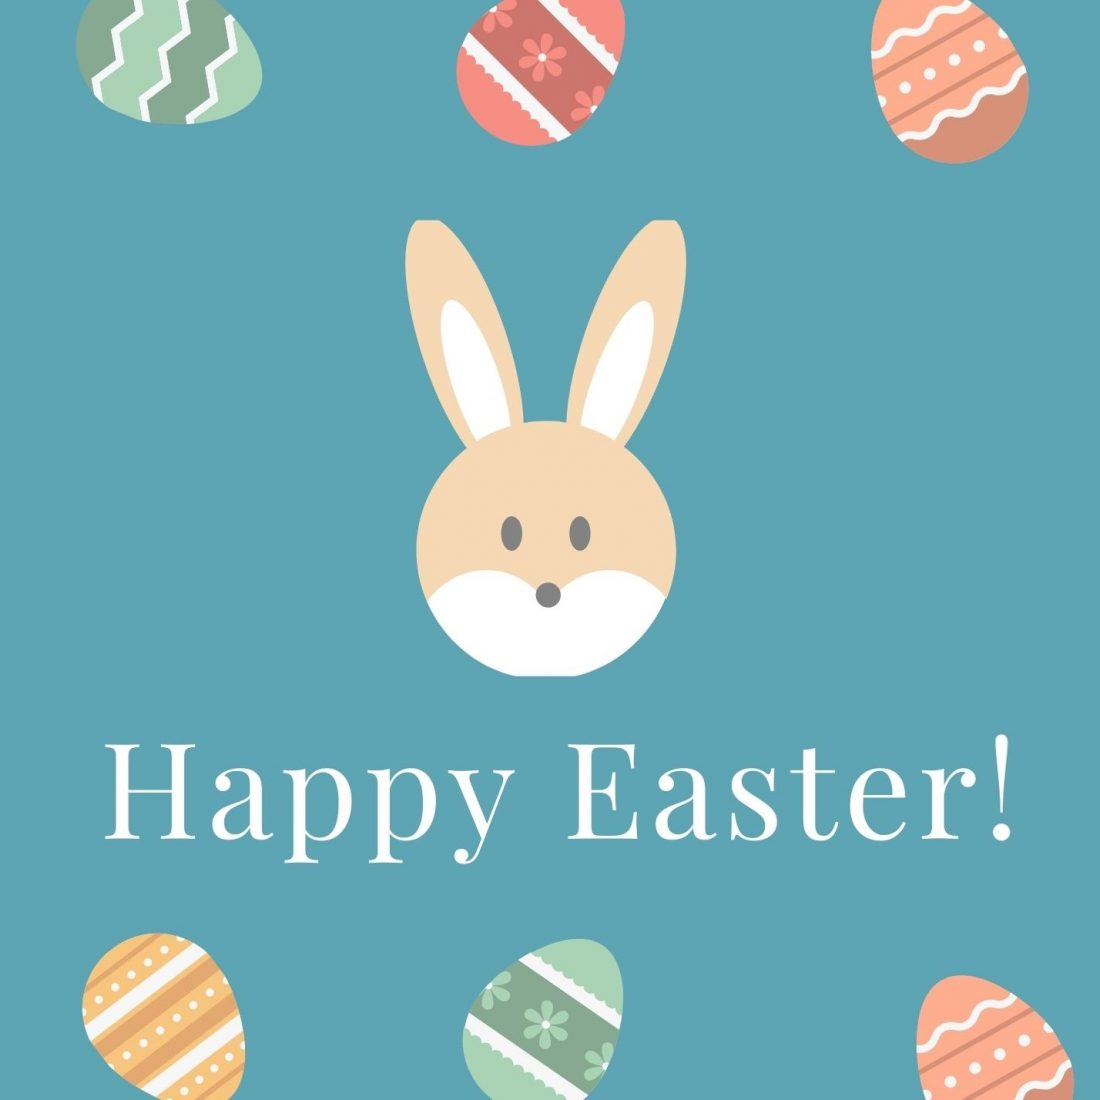 Happy Easter! Image of a cartoon bunny and easter eggs